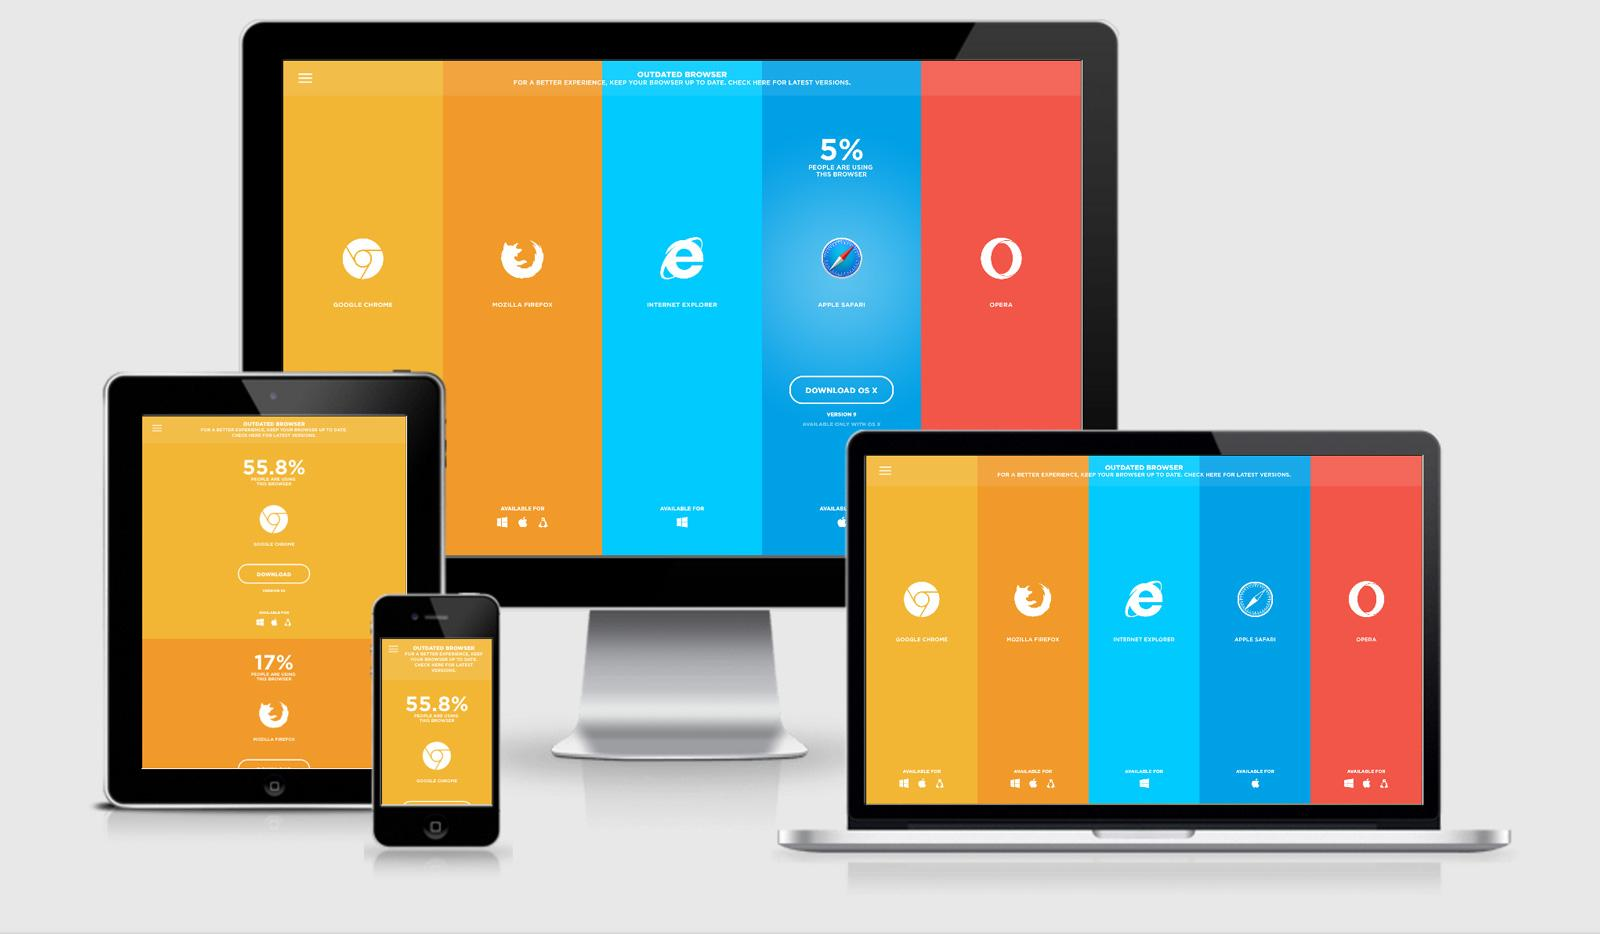 thiet ke giao dien web theo cong nghe responsive